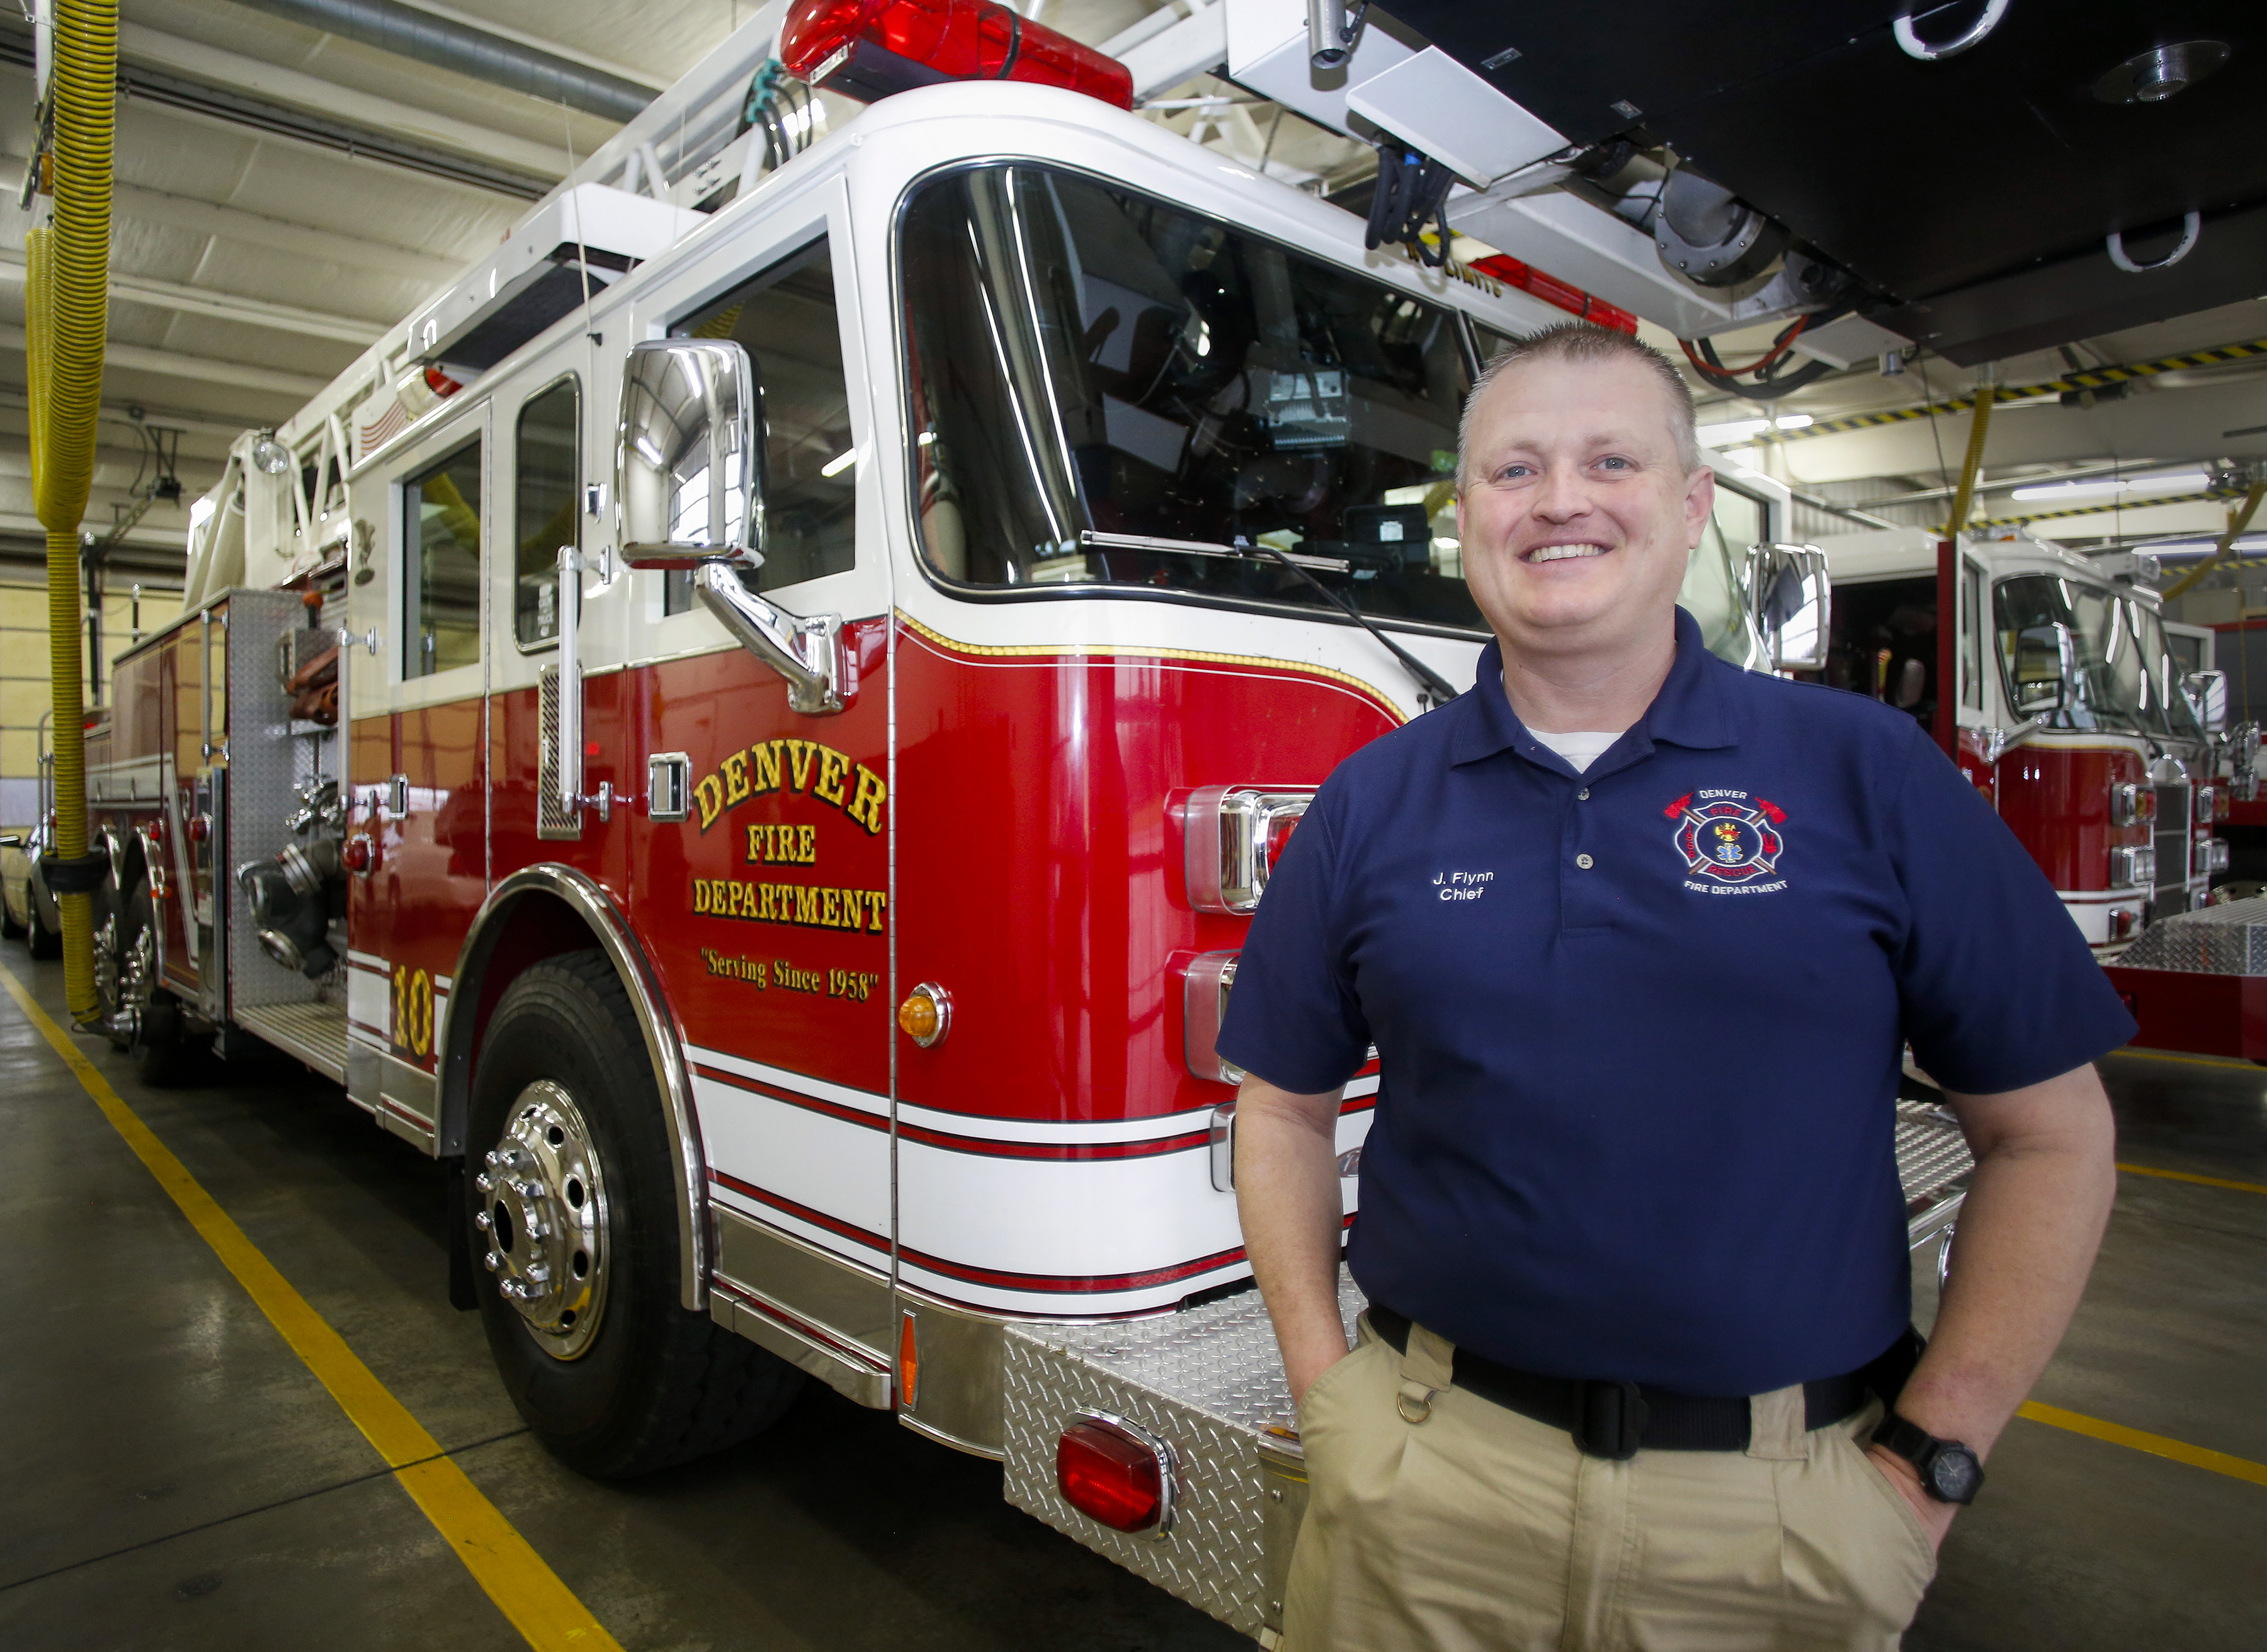 In this photo taken Wednesday, Feb. 3, 2016, Jay Flynn, fire chief of the Denver,  N.C. fire department, stands by one of his fire trucks in Denver, N.C.  Flynn is pulling for the  Carolina Panthers to defeat the Denver Broncos in the Super Bowl, as his f